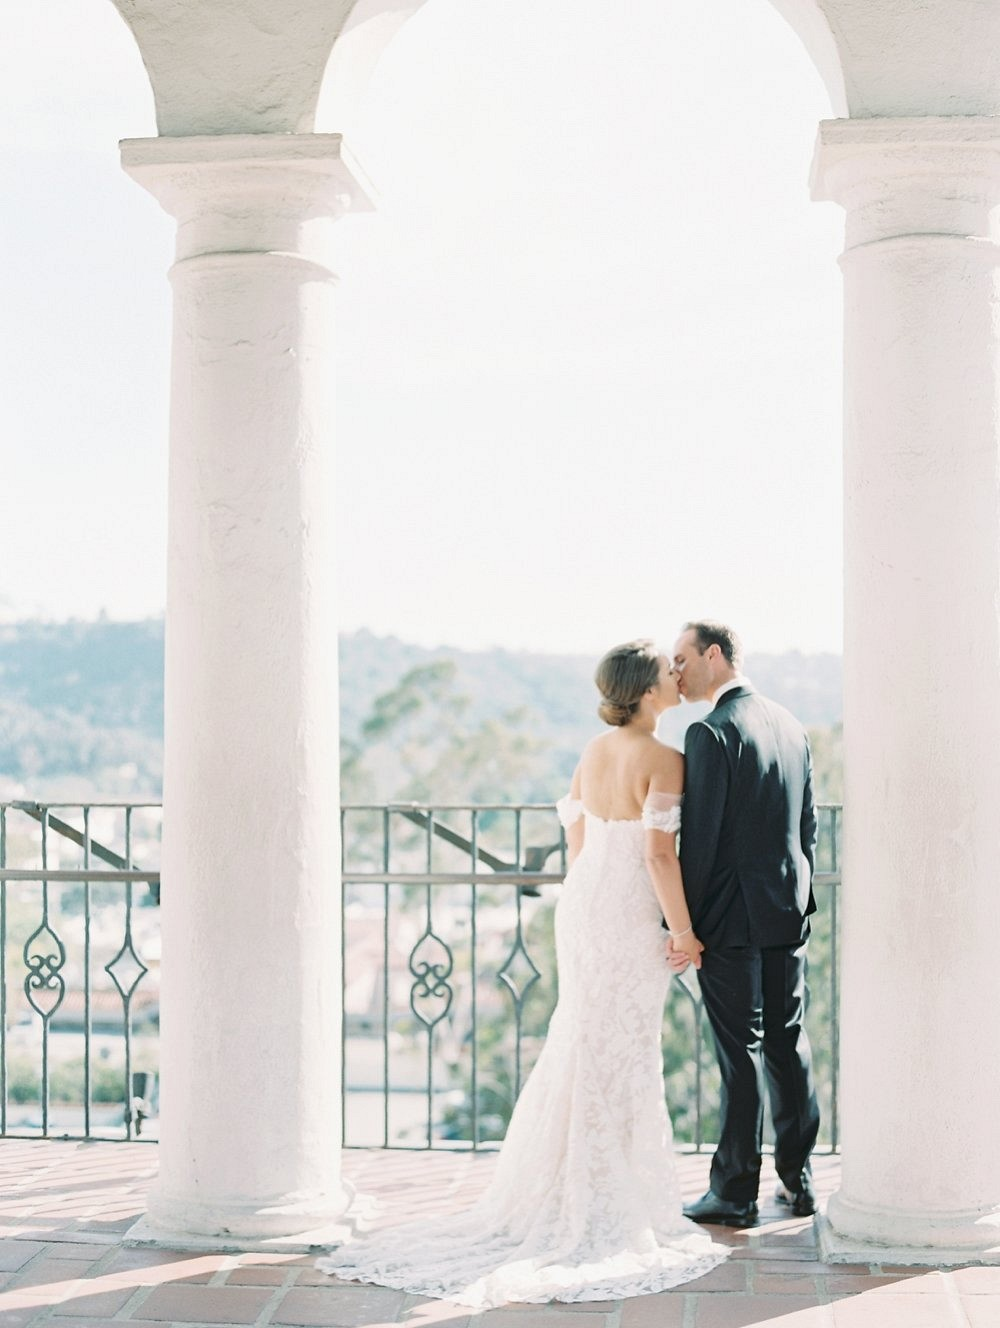 Intimate Monochromatic Wedding in Santa Barbara